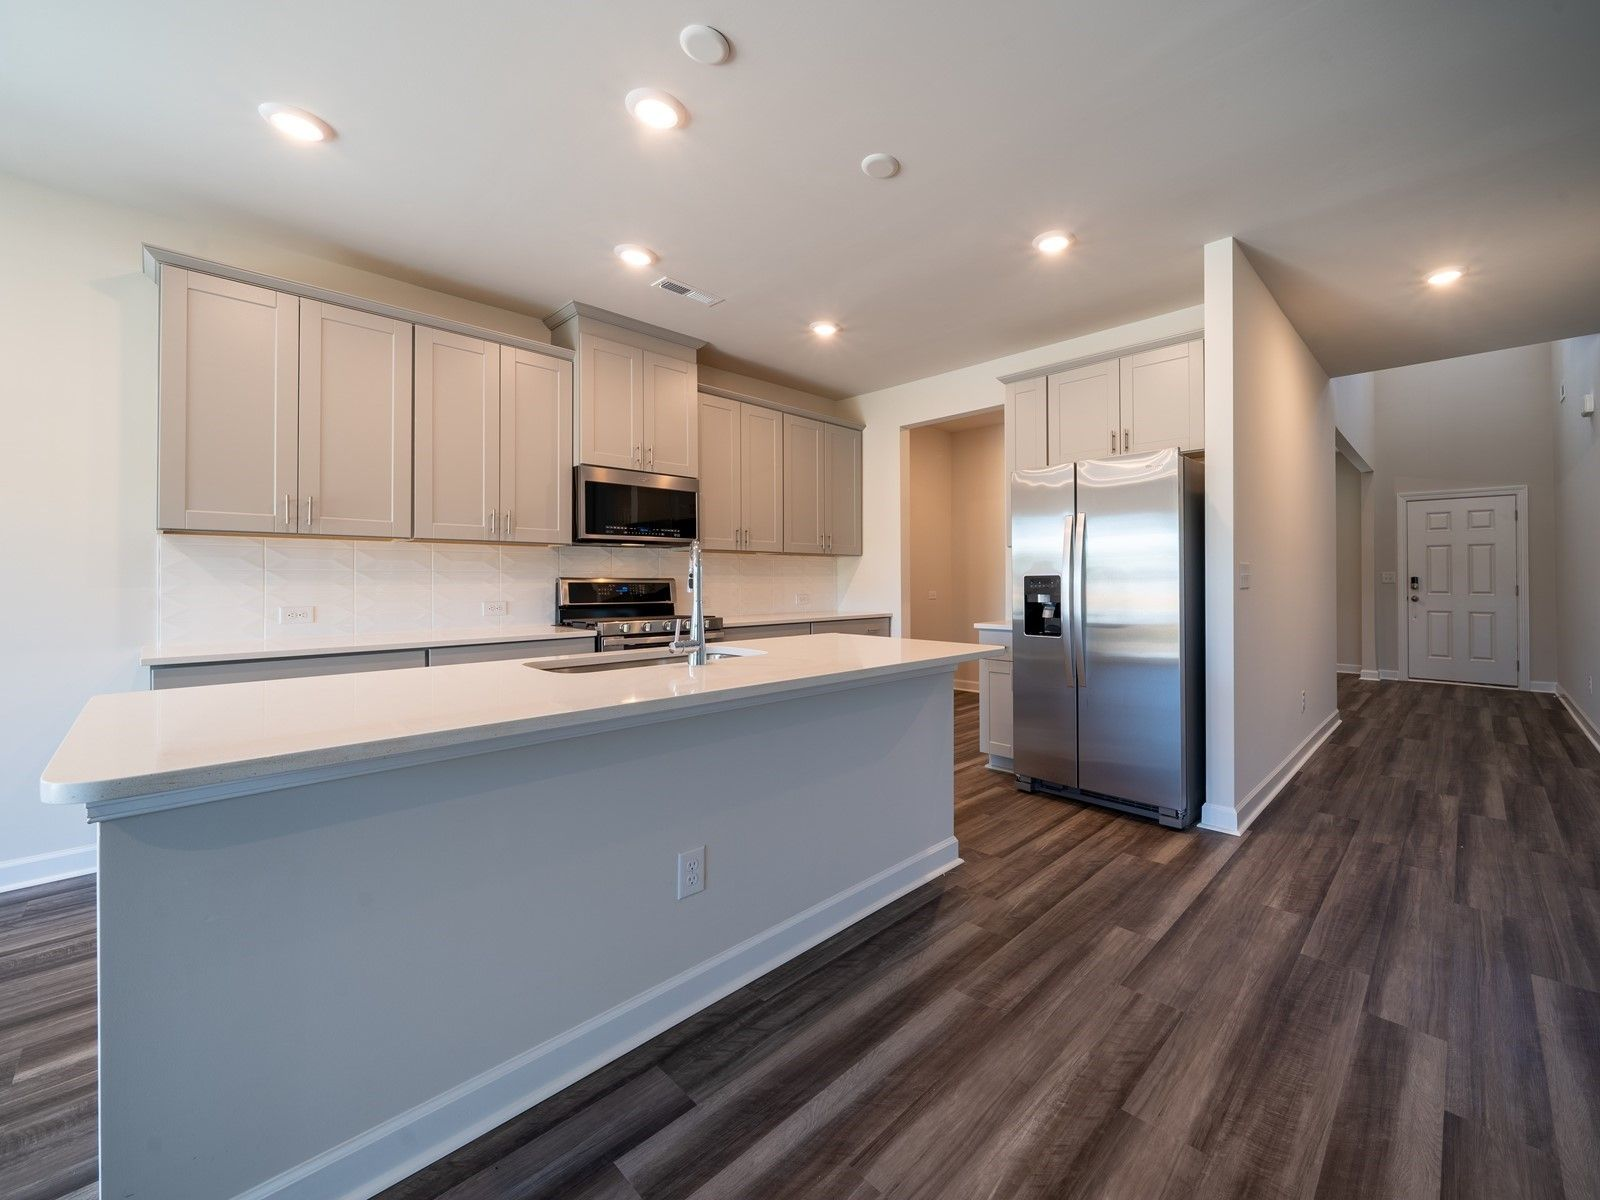 Kitchen featured in the Johnson By Meritage Homes in Atlanta, GA